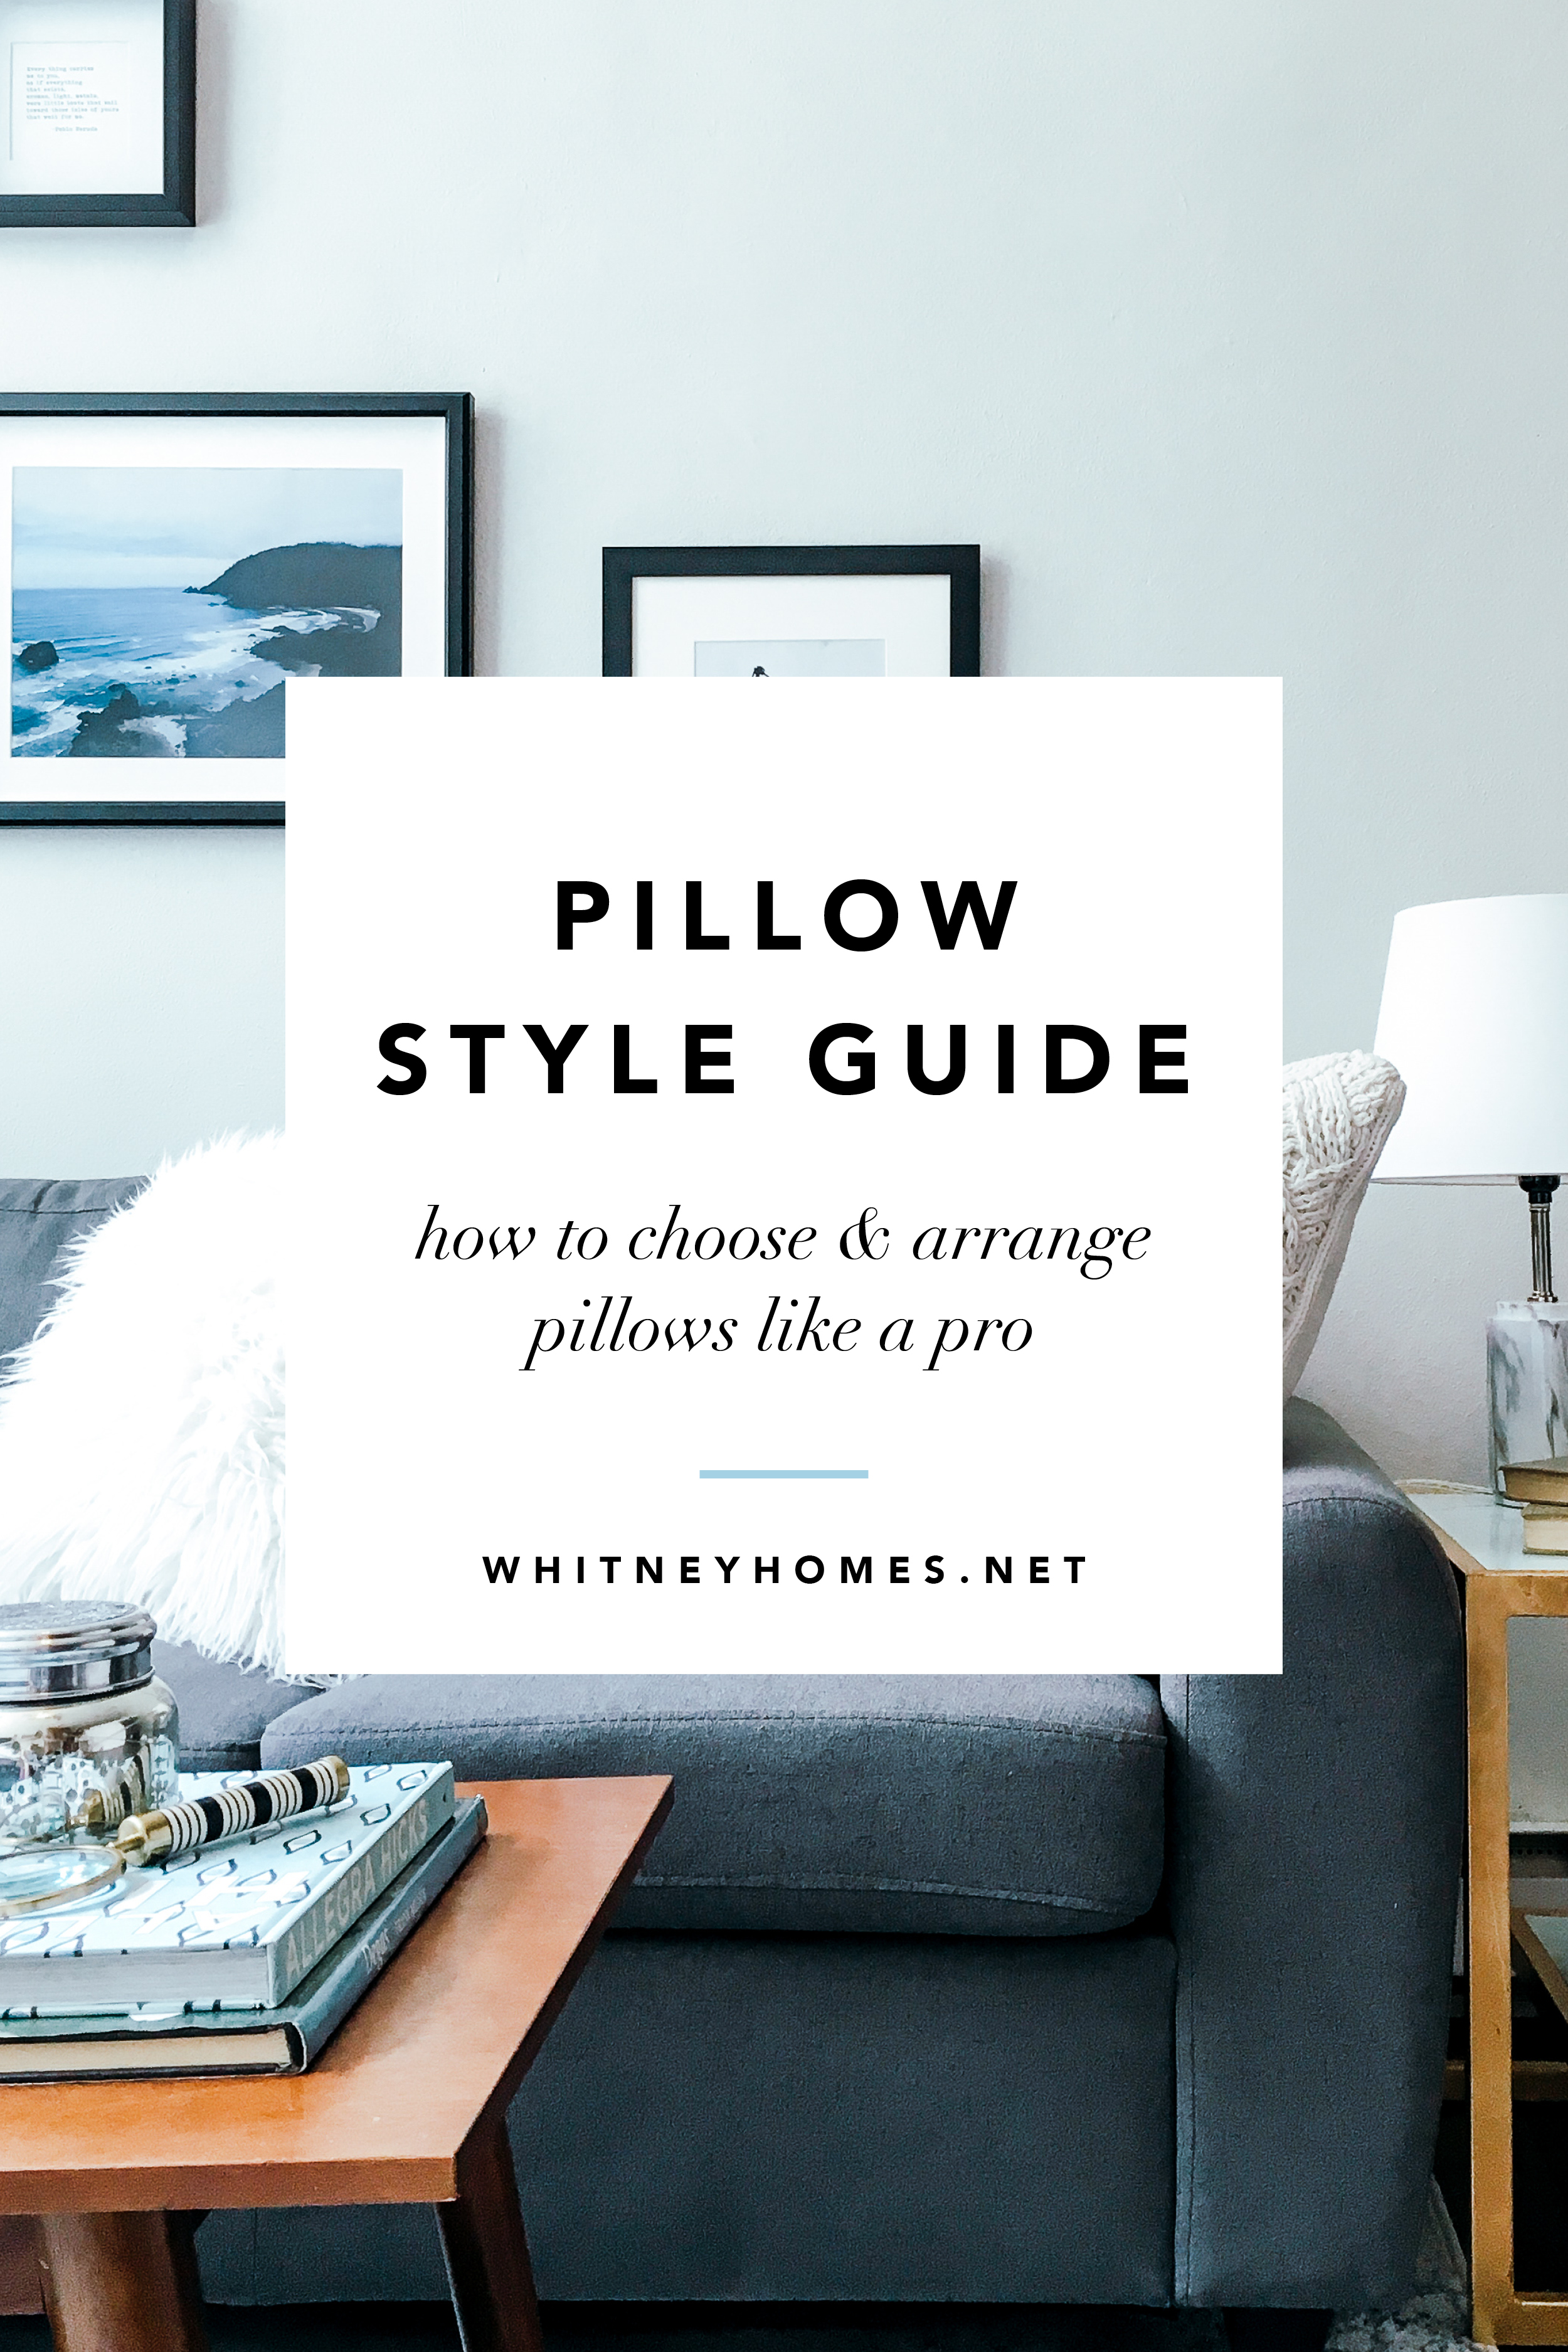 WH_Blog_Pillow-Style-Guide16.jpg